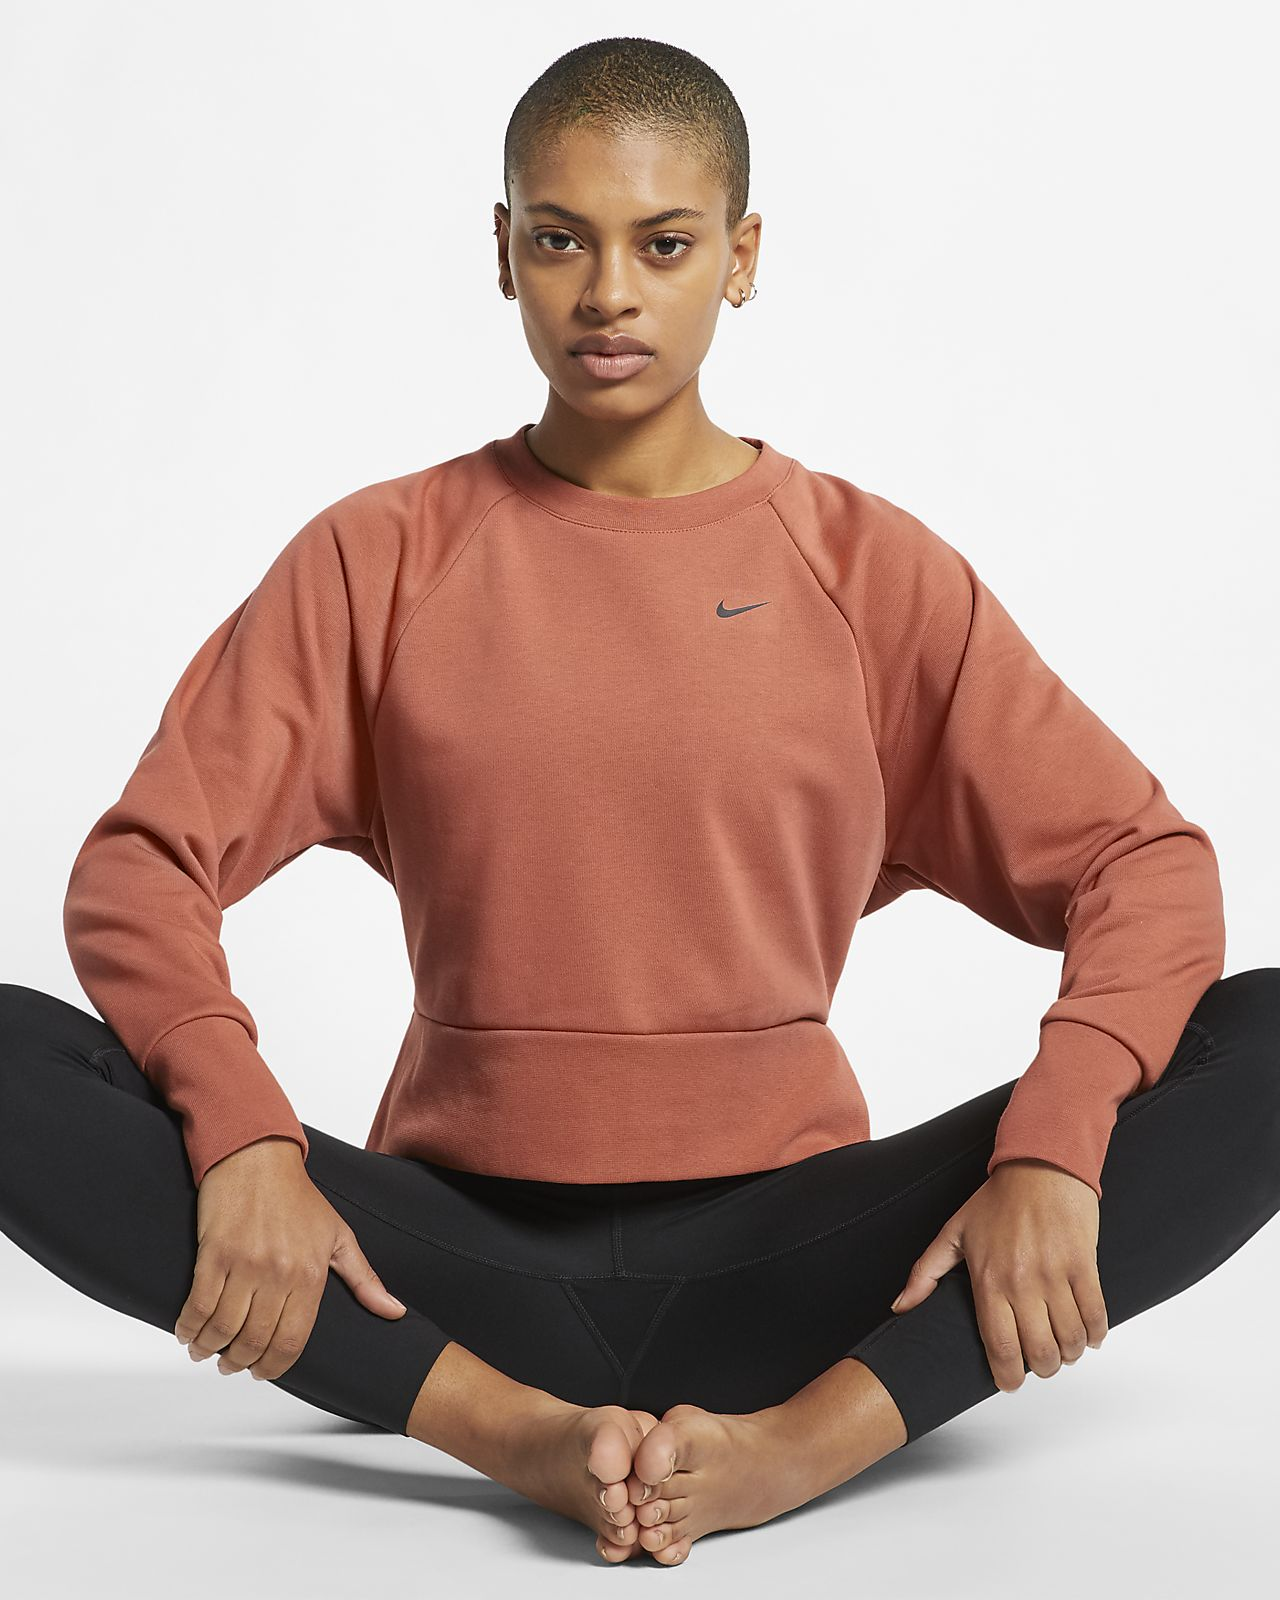 Nike Dri-FIT langärmliges Yoga-Trainingsoberteil für Damen